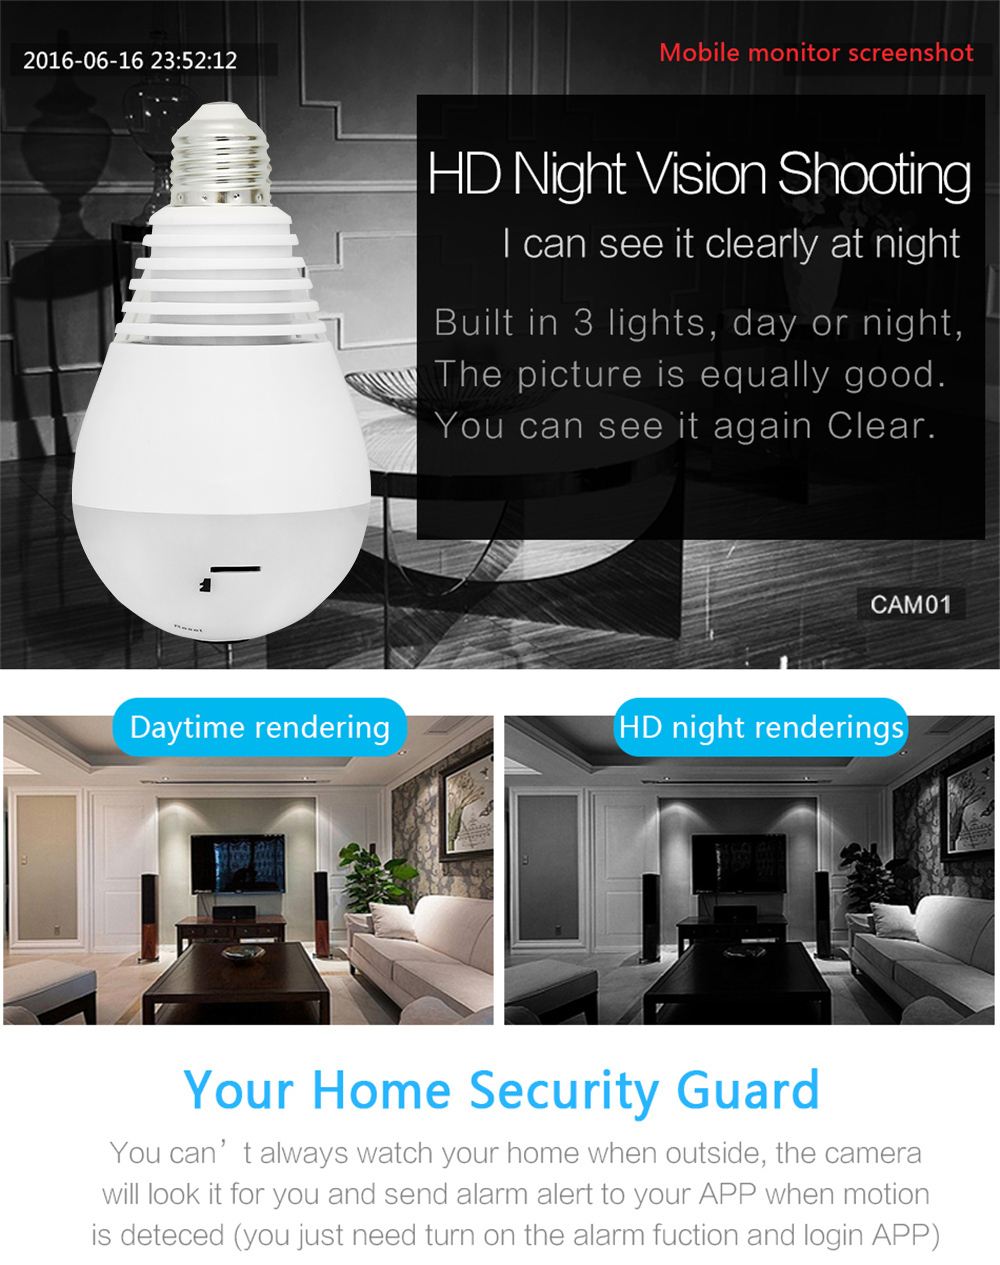 Wistino 960P Wireless VR Panoramic IP Camera Bulb Light Wifi FishEye 360 degree CCTV Surveillance Security Monitor Comone 1 (6)